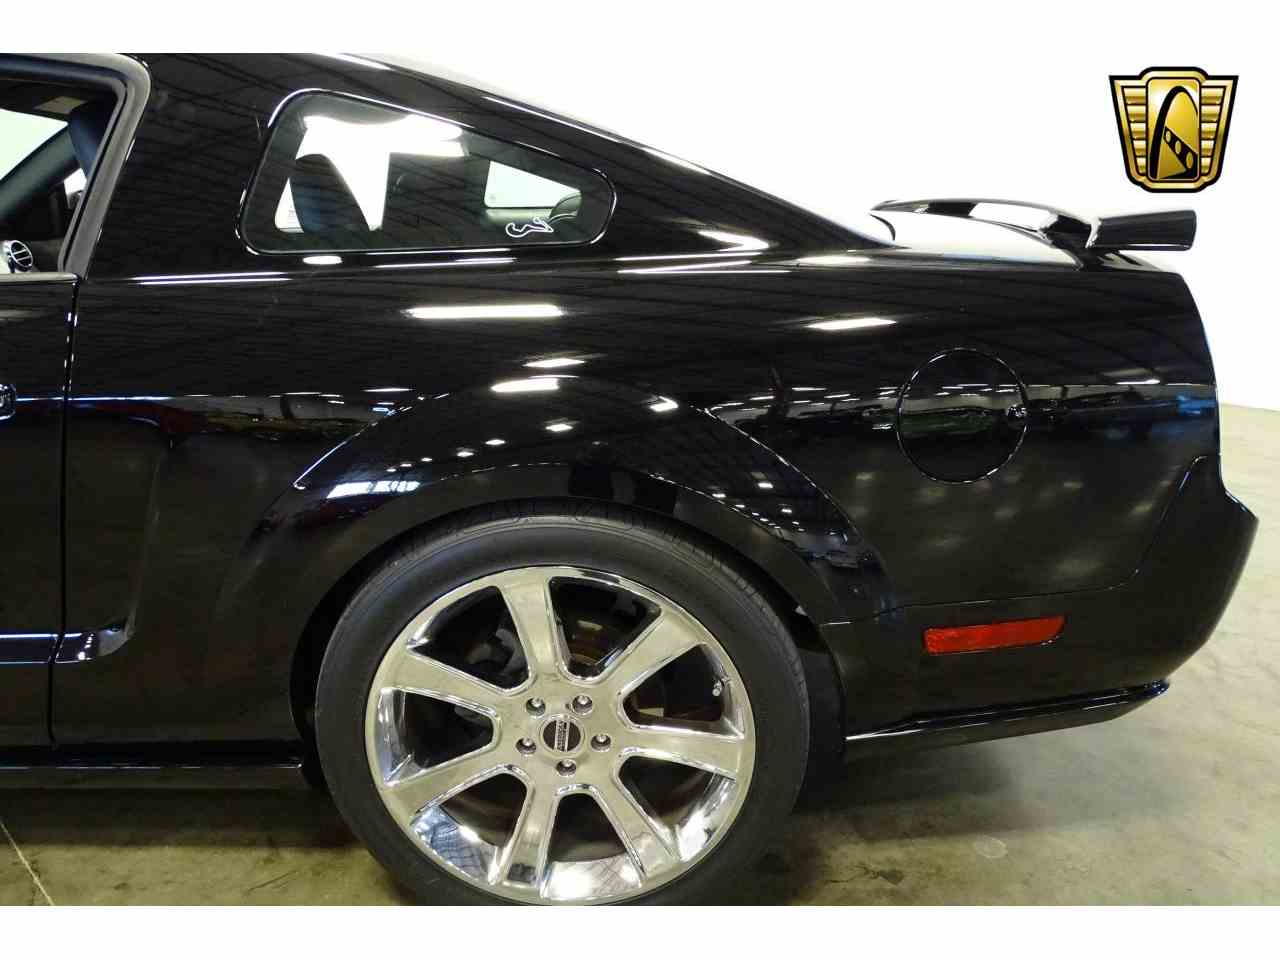 Large Picture of 2006 Mustang located in Tennessee - $15,595.00 - MFDI